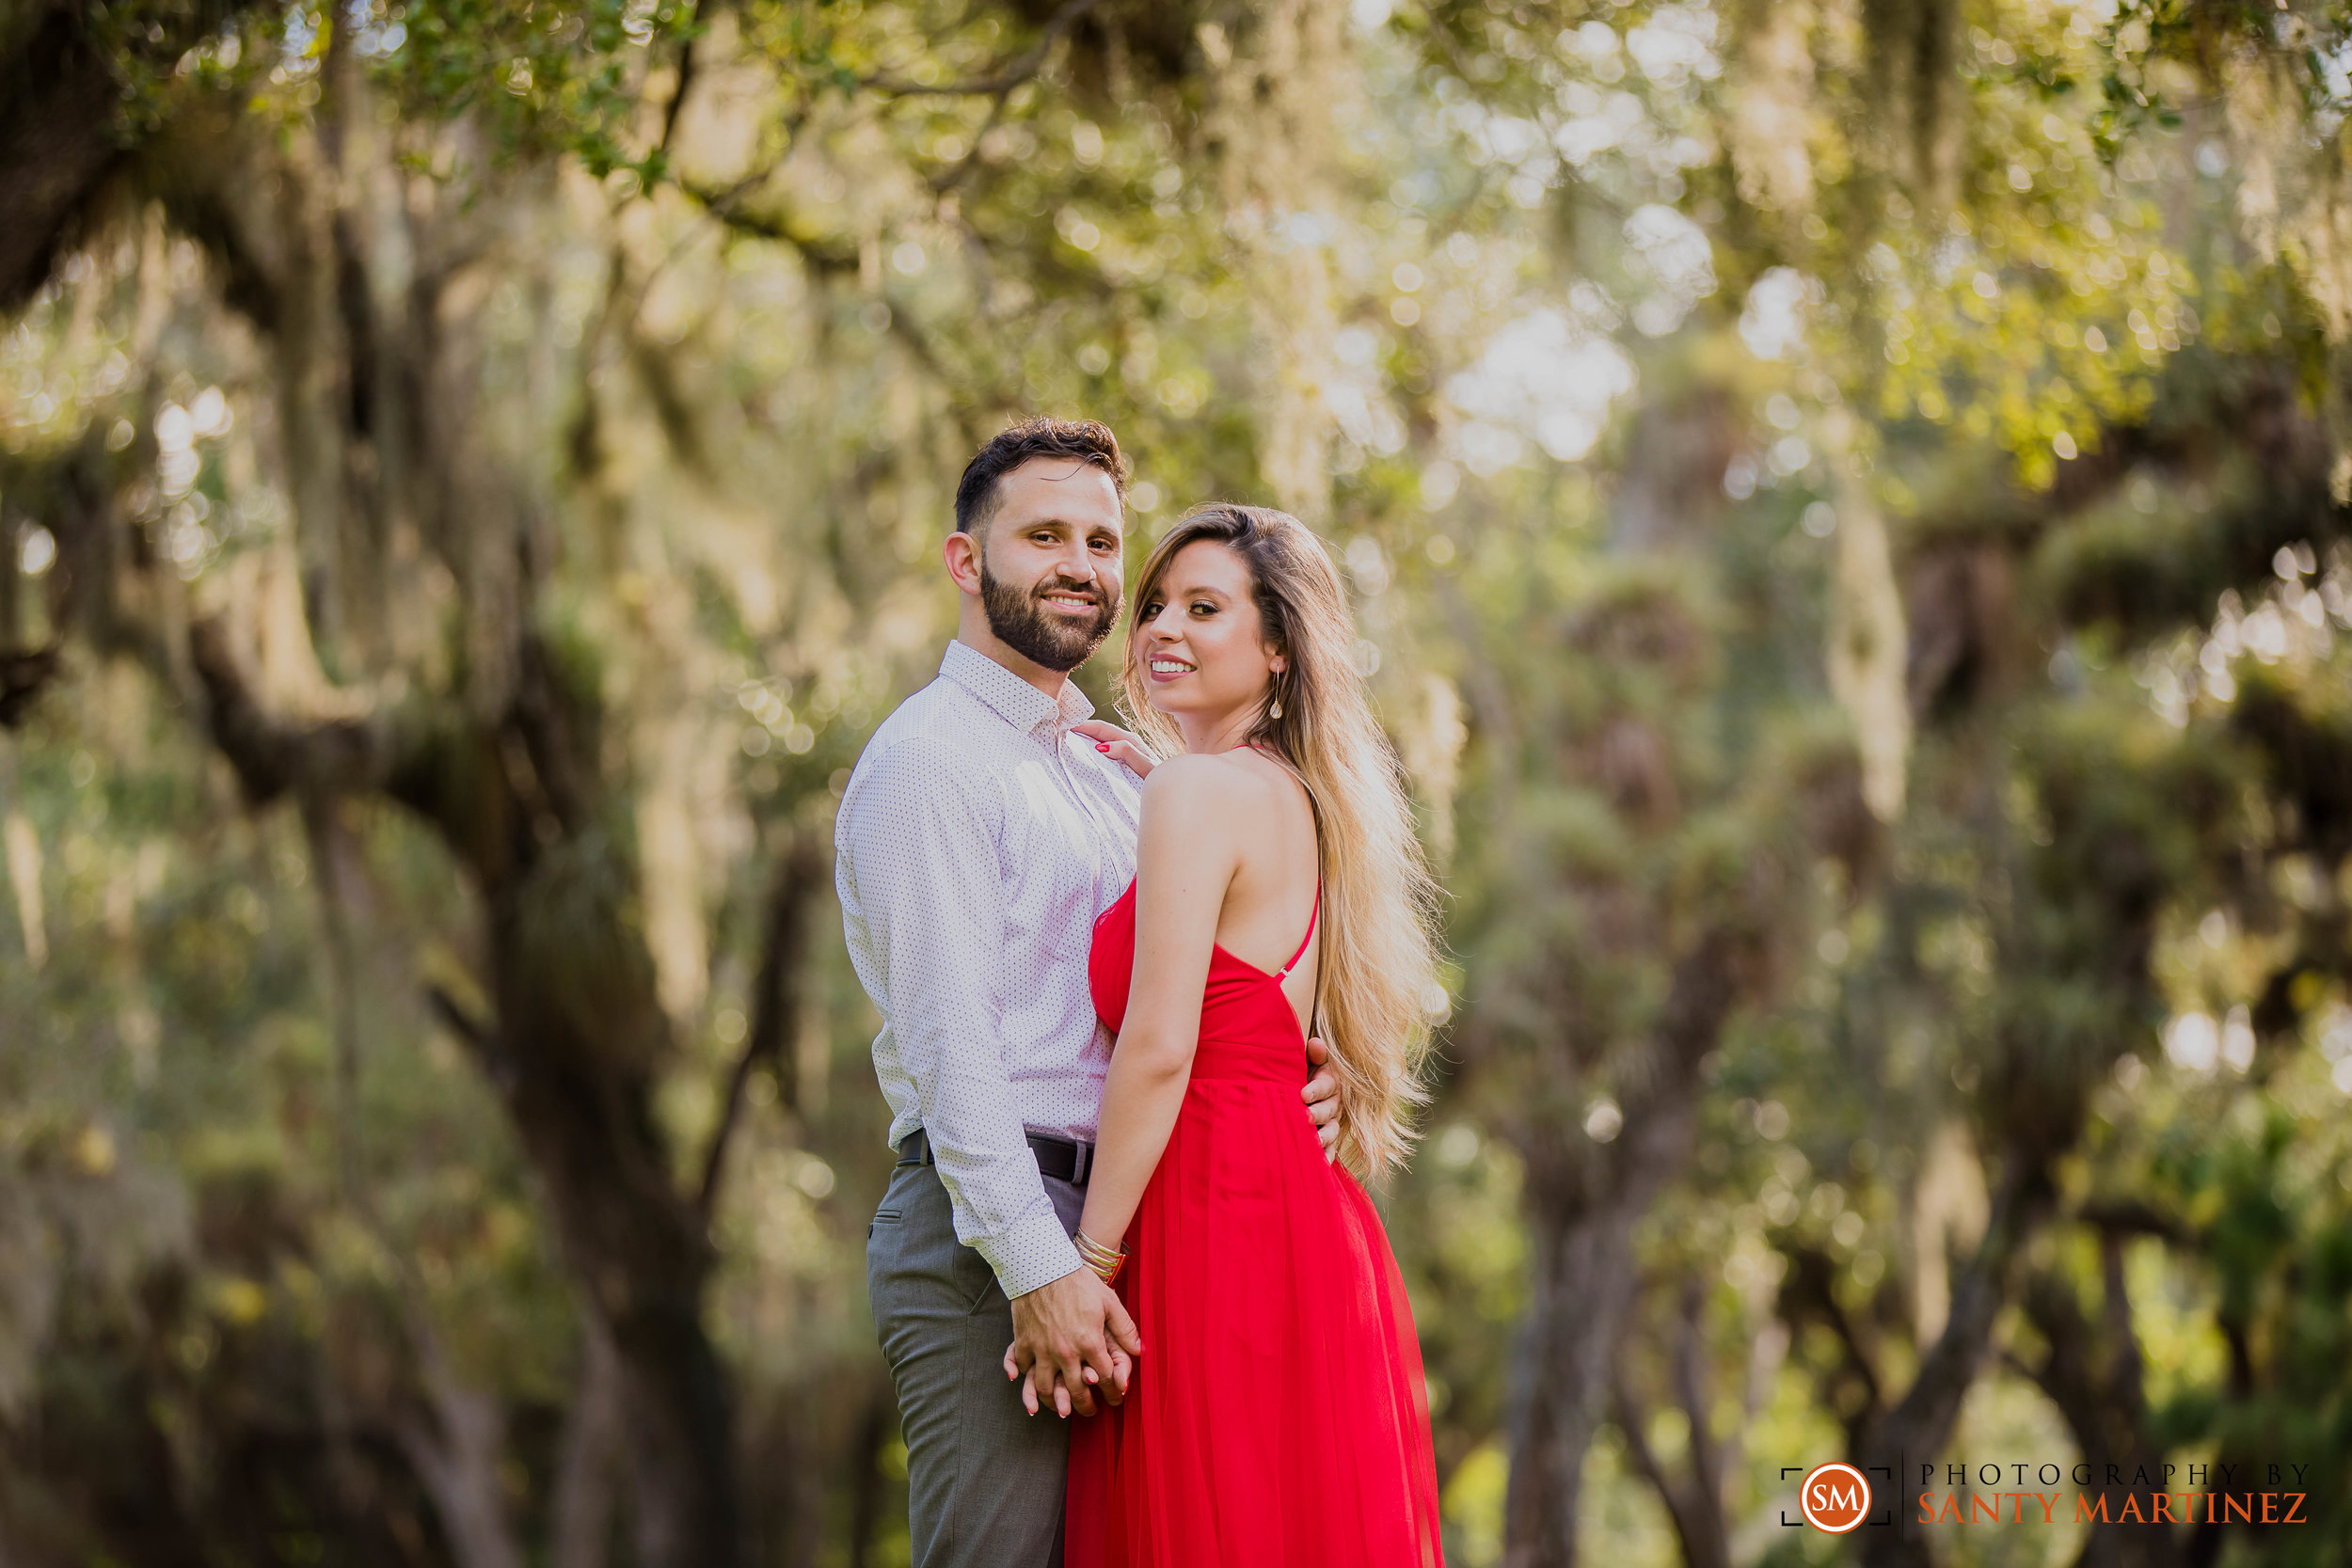 Engagement Session - Matheson Hammock Park - Santy Martinez Wedding Photographer-9.jpg